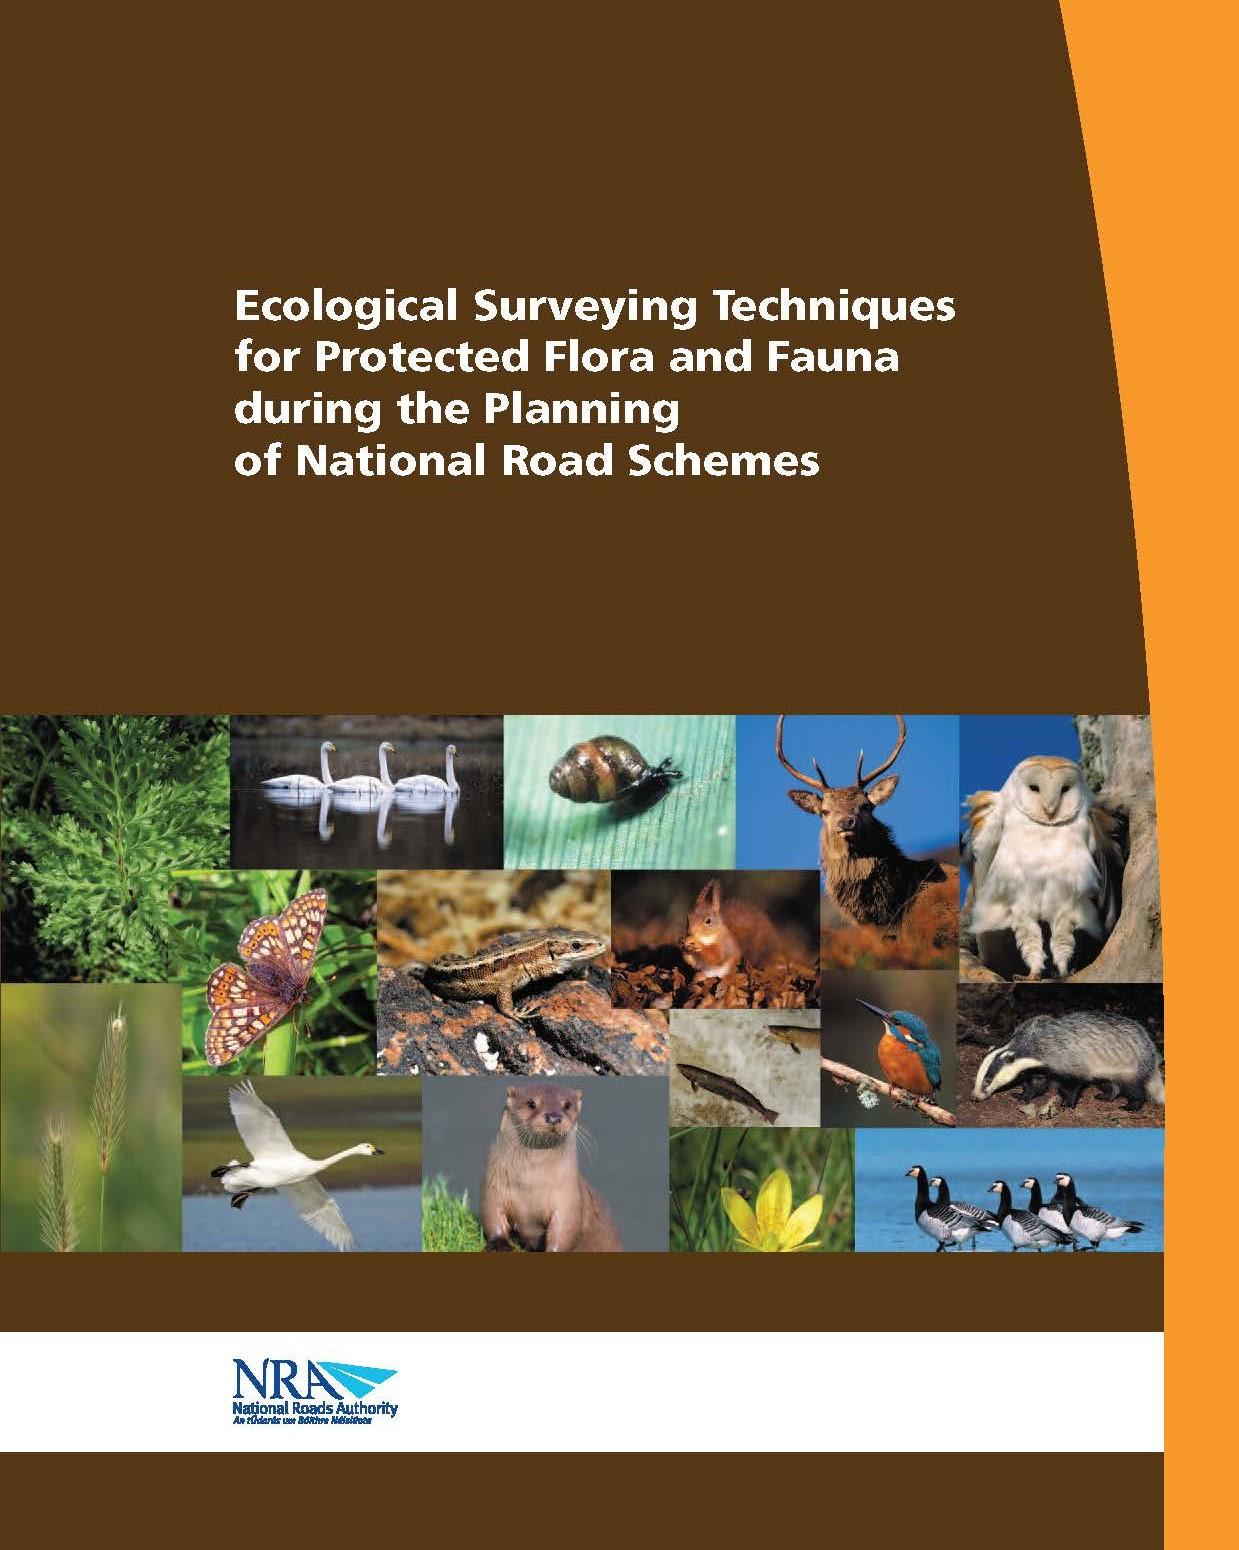 Ecological Surveying Techniques for Protected Flora and Fauna during the Planning of National Road Schemes. National Roads Authority (NRA)